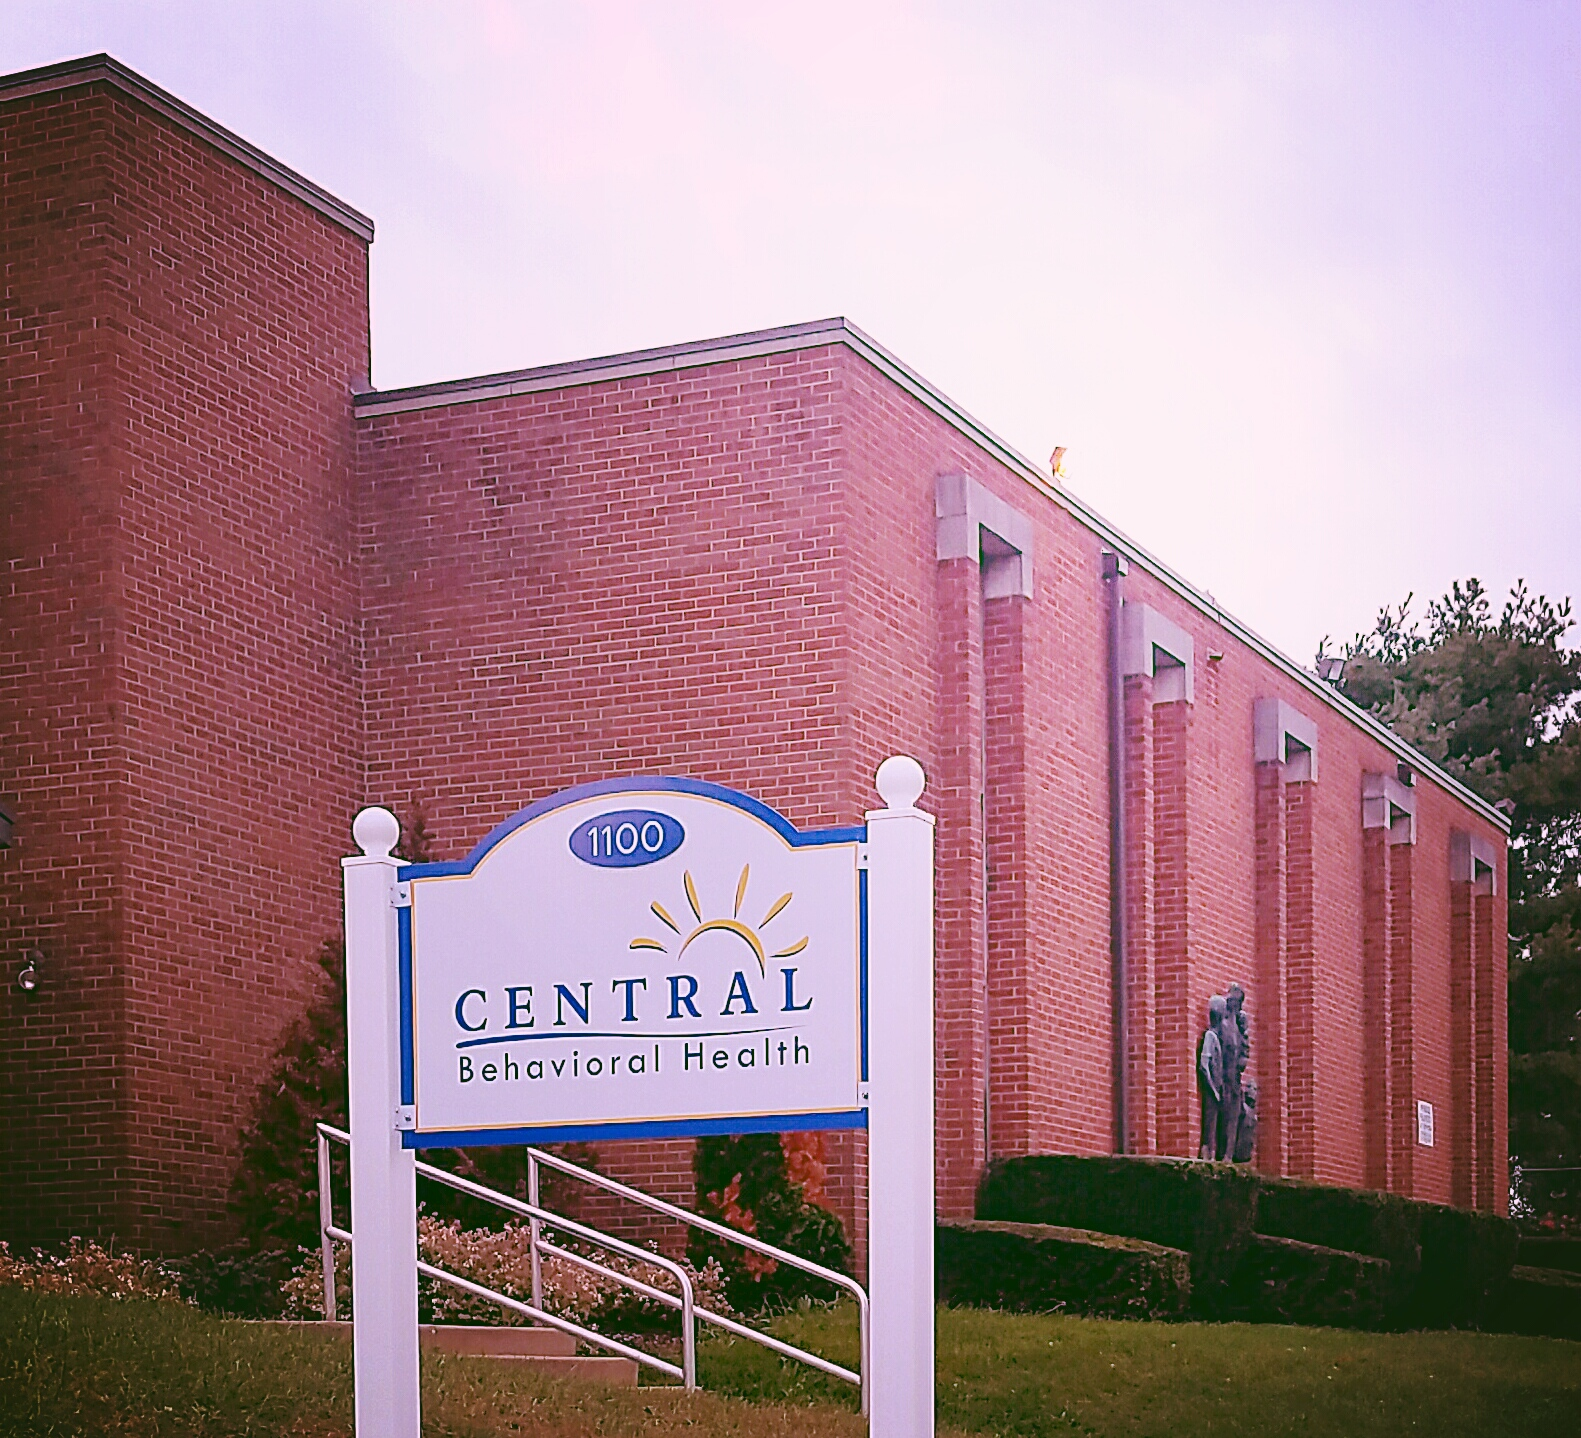 Central Behavioral Health Your Journey Begins At Central